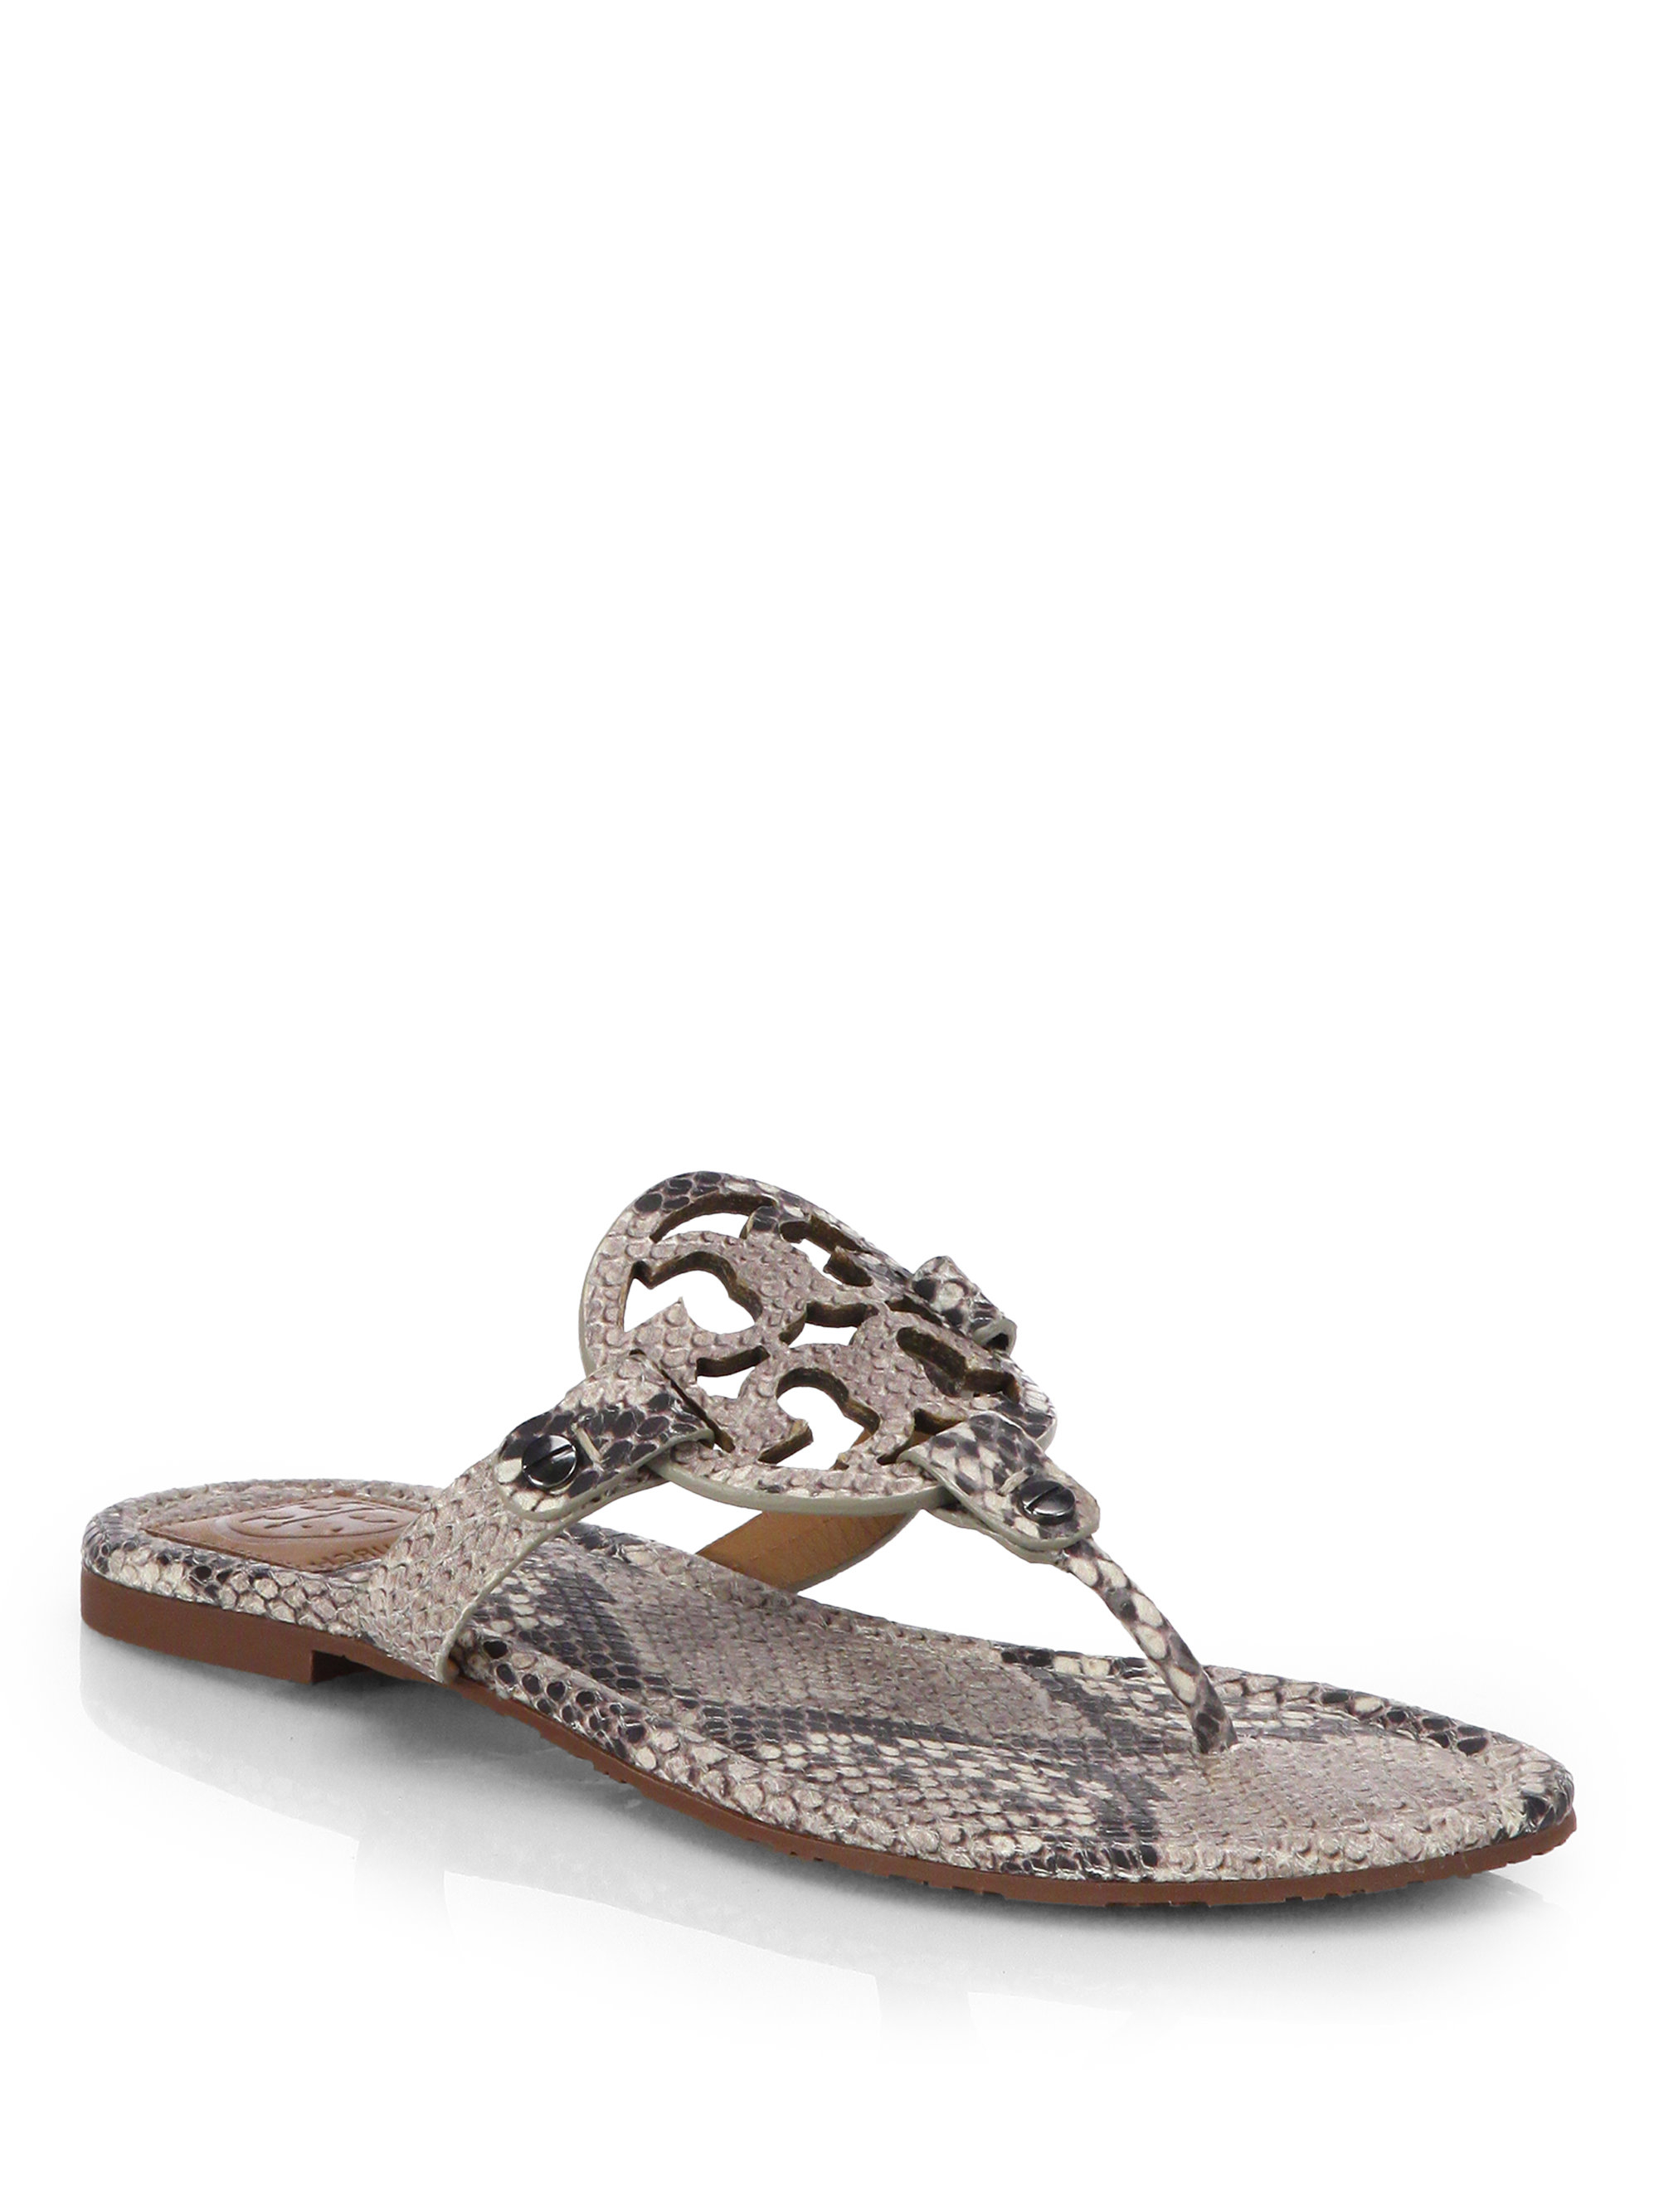 Tory Burch Miller Snake Effect Leather Sandals In Animal